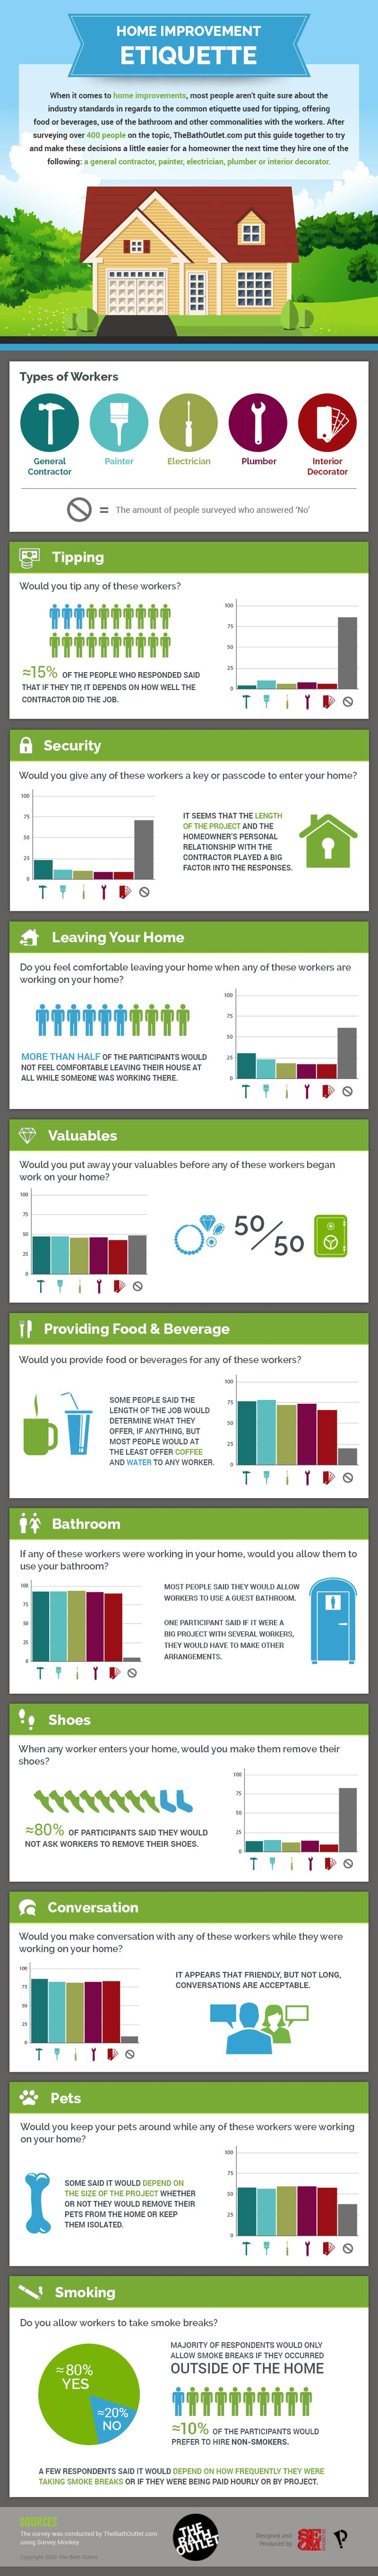 Should you tip your contractor? Should you offer them food or drinks? Should you offer them your bathroom? The Bath Outlet surveyed over 400 people, and put together this home contractor infographic guide to etiquette.